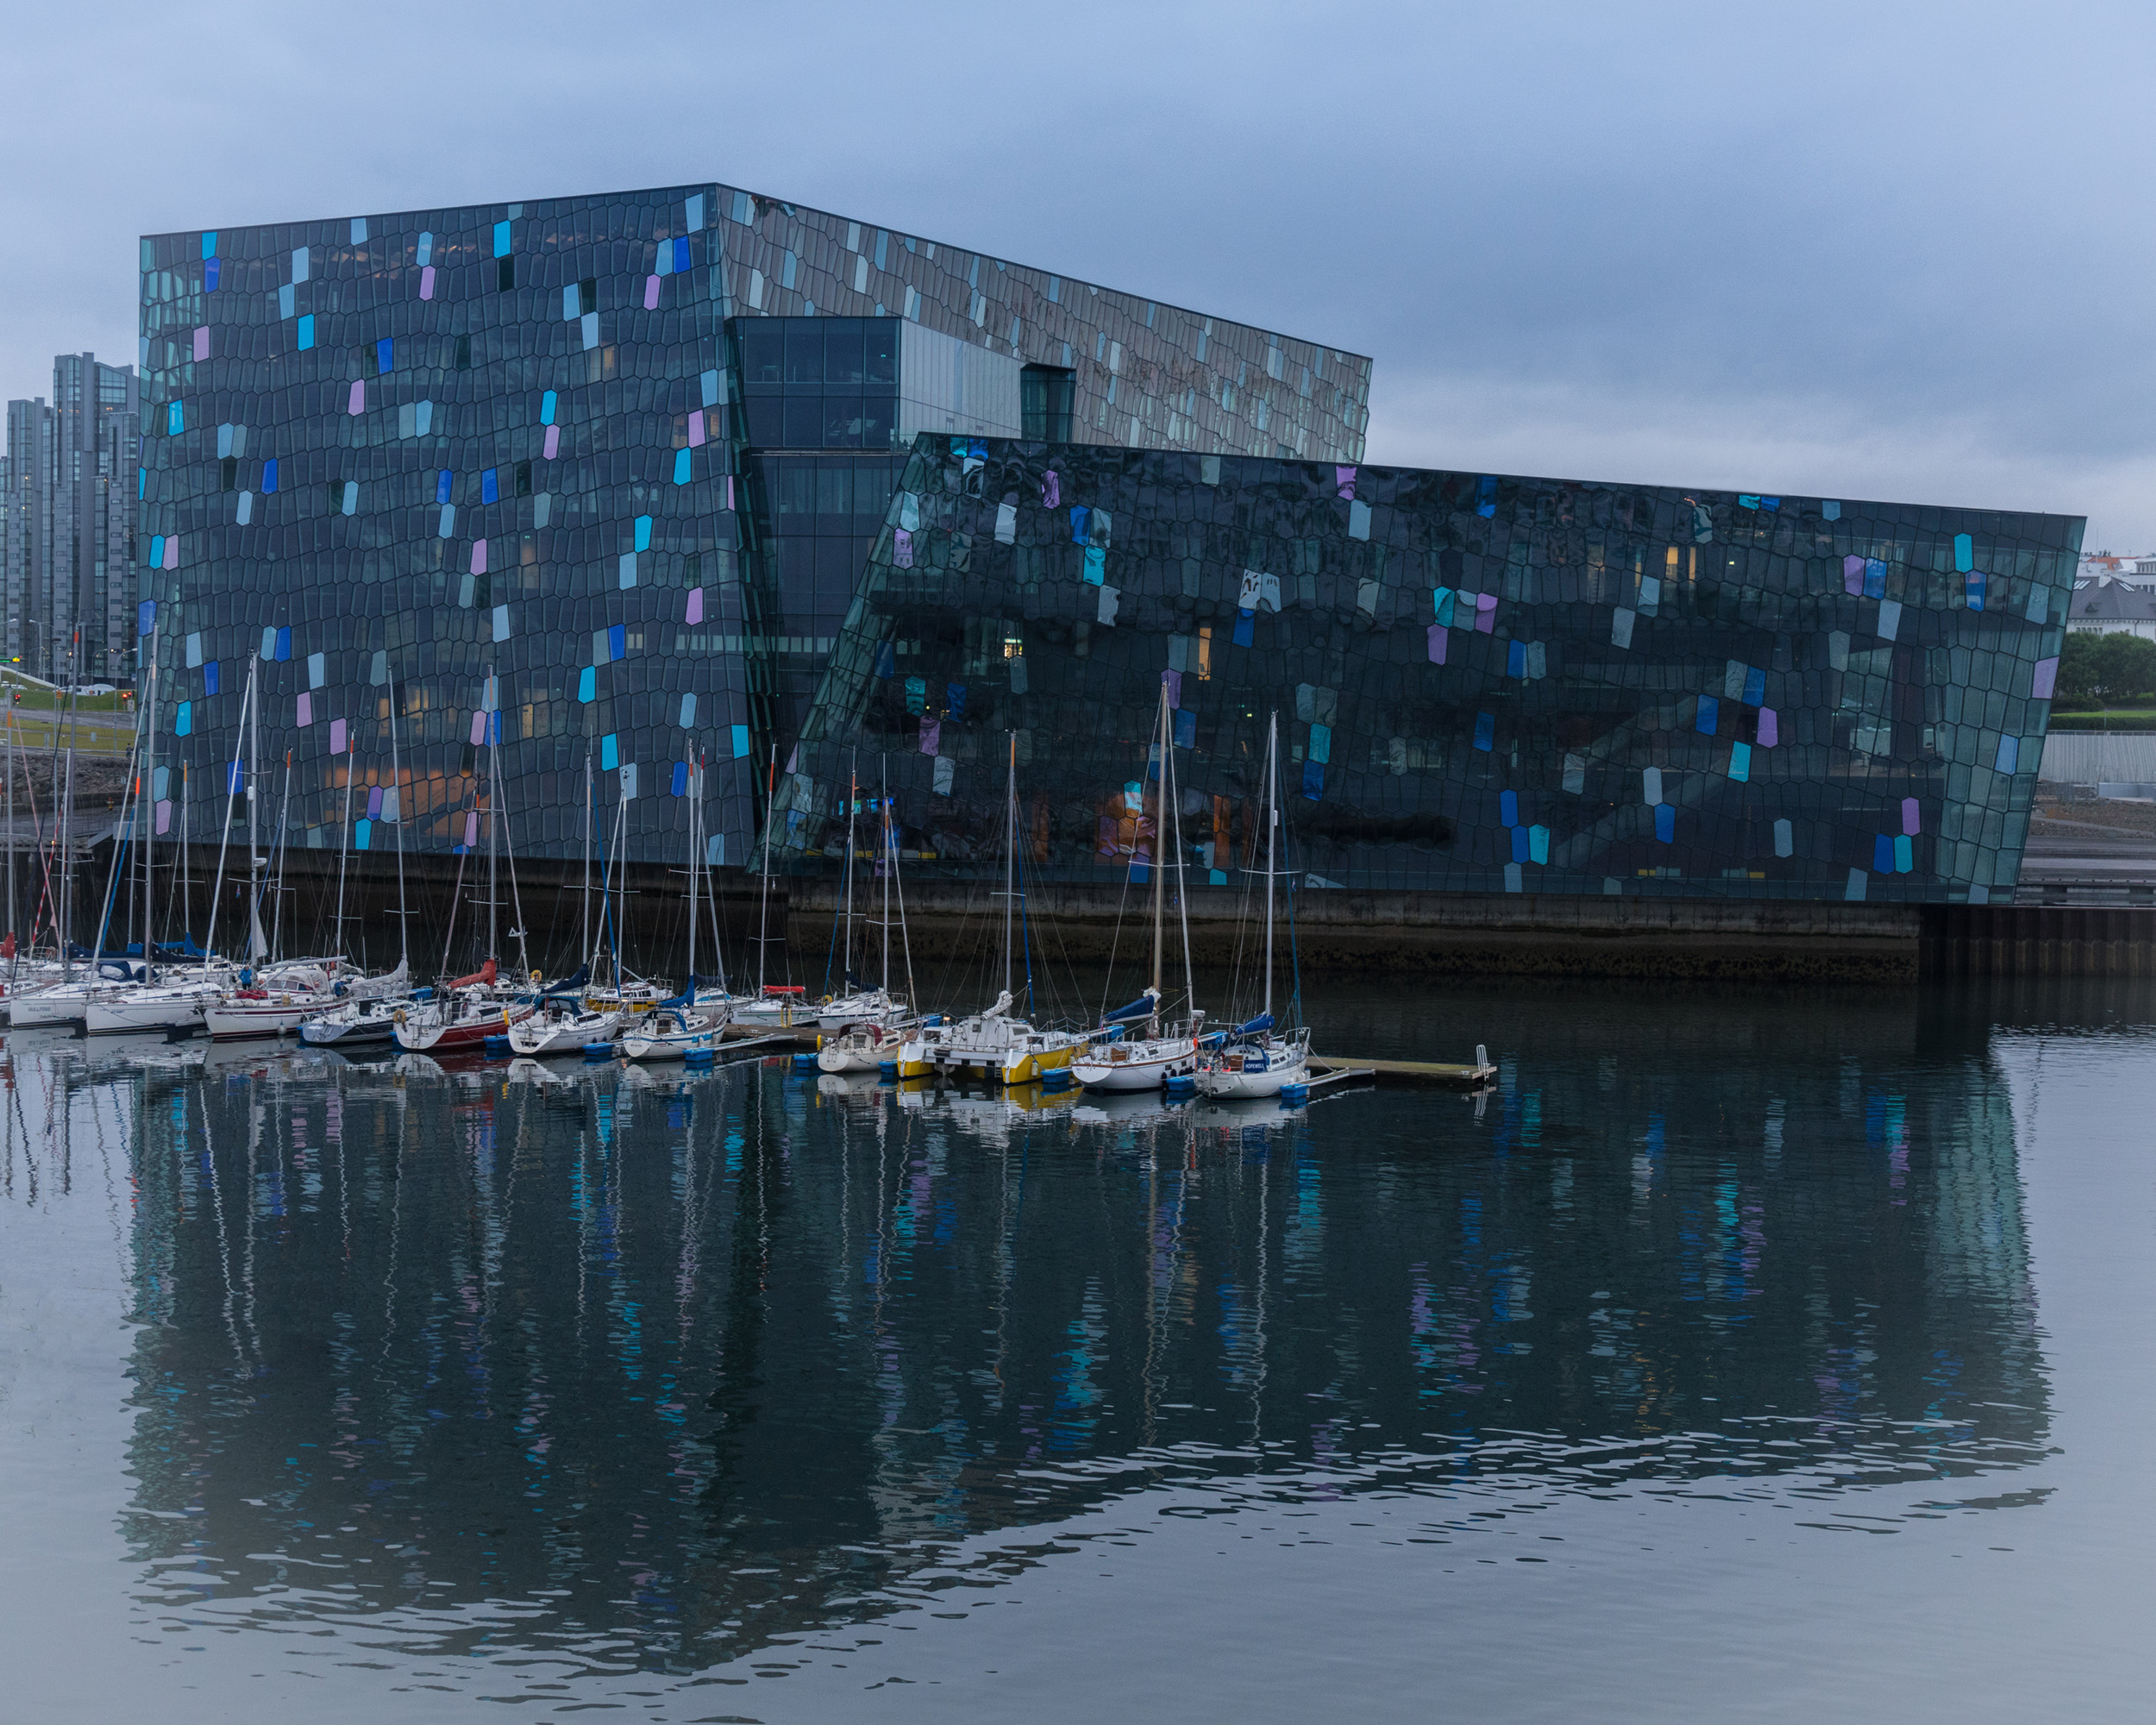 #harpa, #reykjavik, #iceland, #architecture, #harbor, #music, #july, #windstar